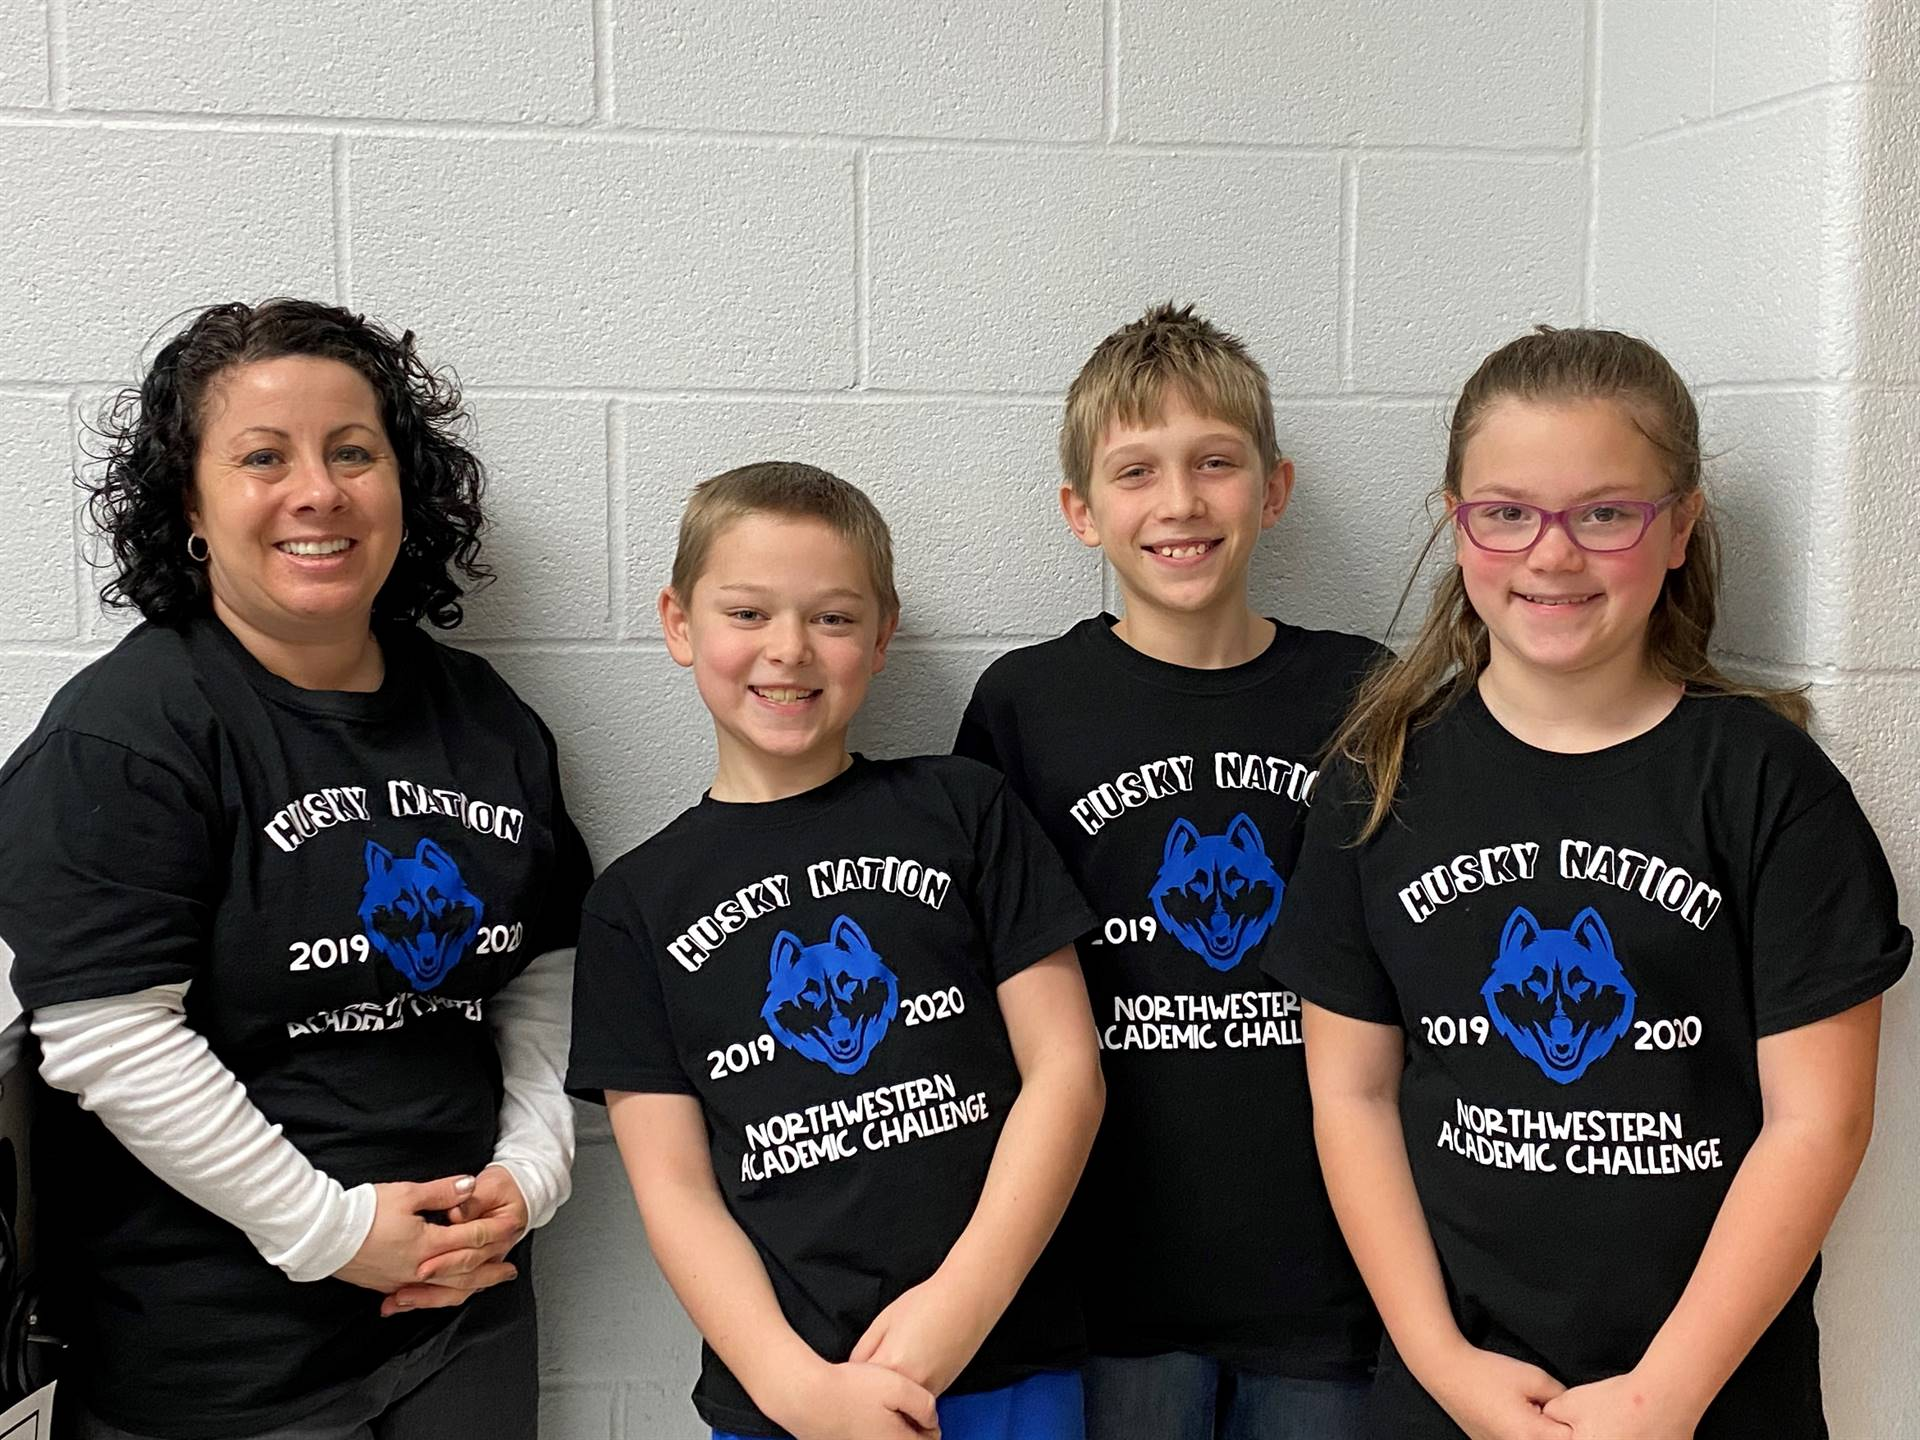 Our 4th Grade Academic Challenge Team with Mrs. Harbaugh